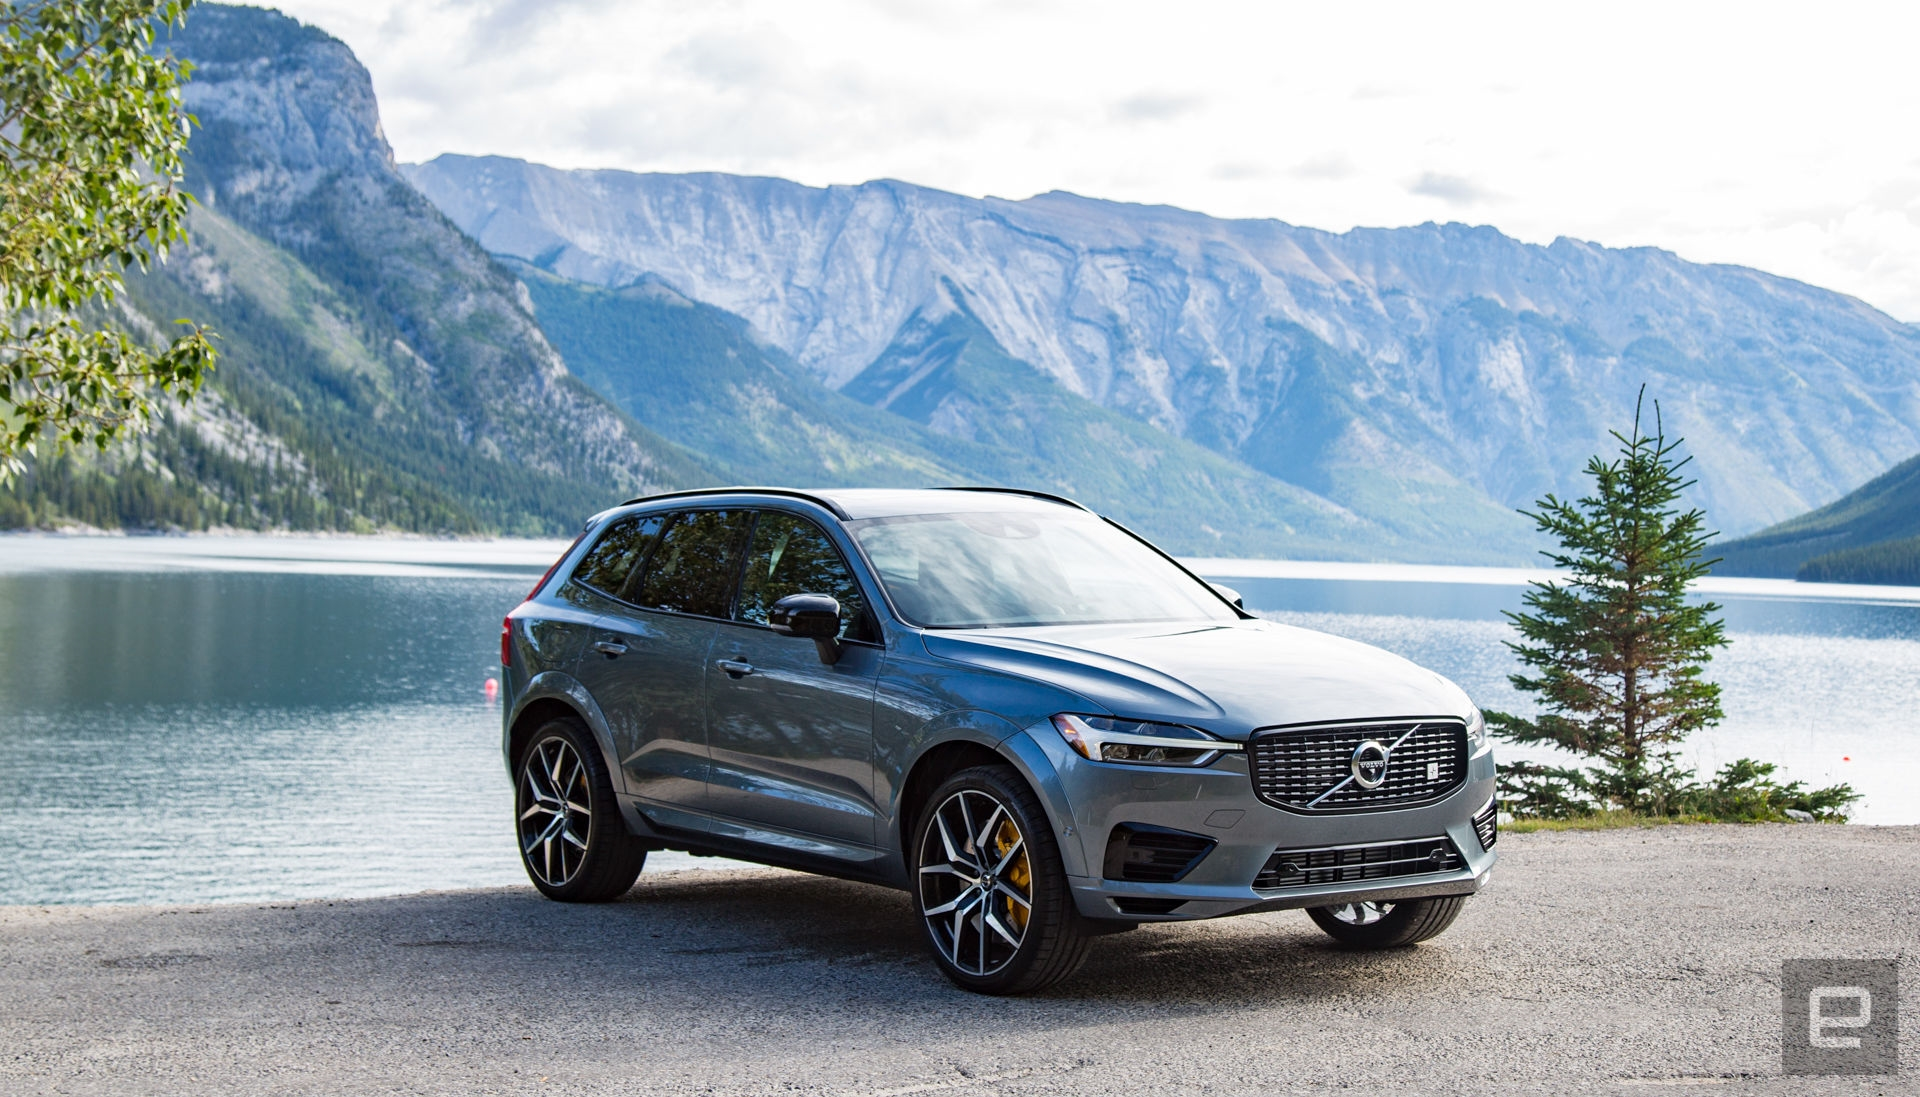 Volvo's Polestar engineered XC60 is fast, but still reserved | DeviceDaily.com